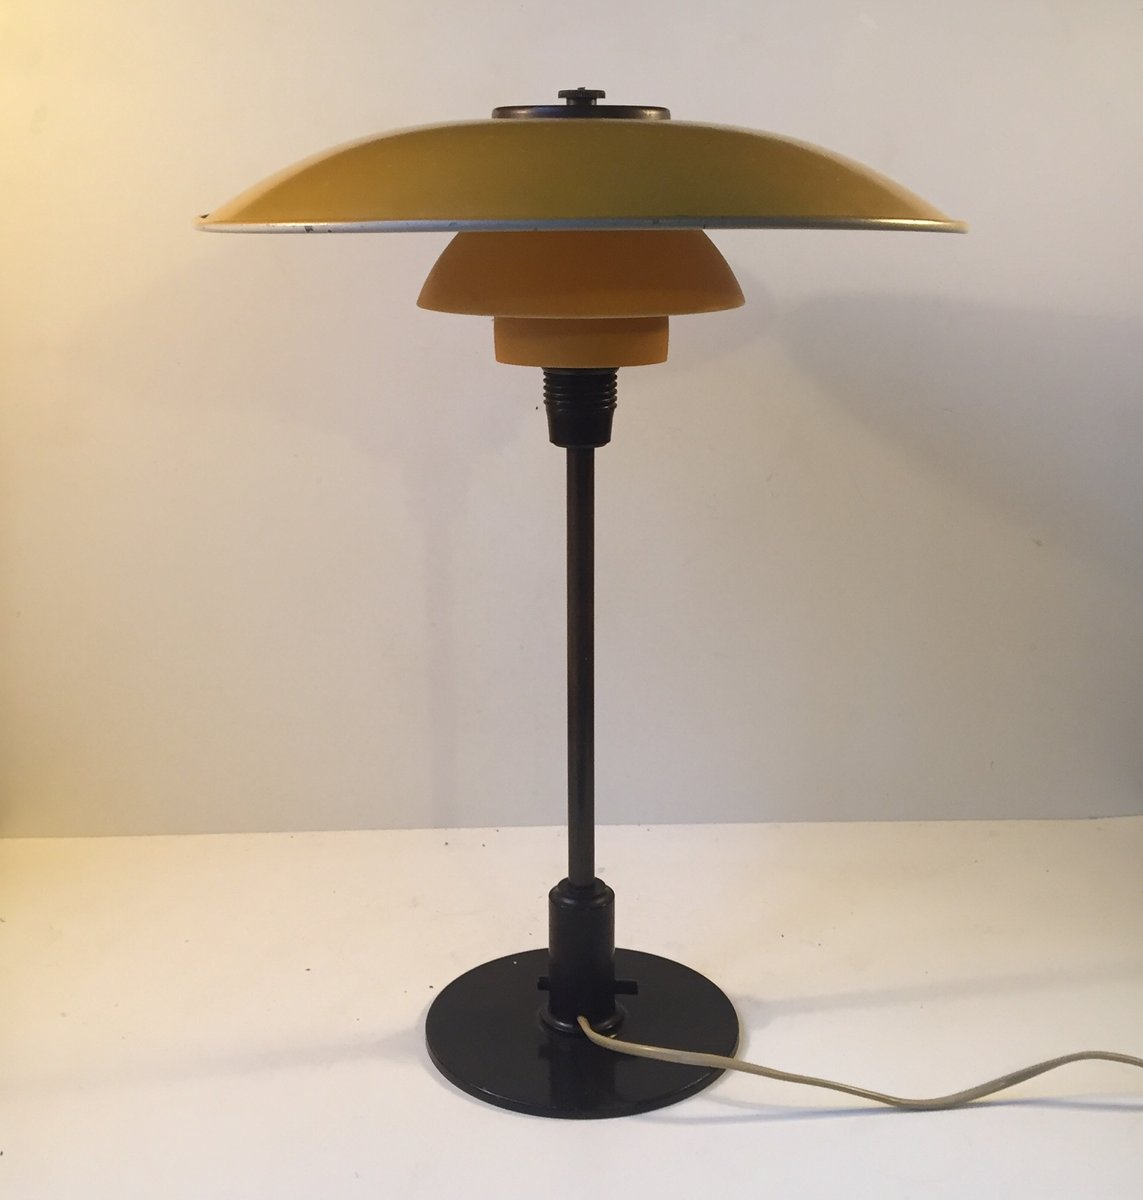 Ph 352 table lamp by poul henningsen for louis poulsen 1930s en ph 352 table lamp by poul henningsen for louis poulsen 1930s aloadofball Image collections